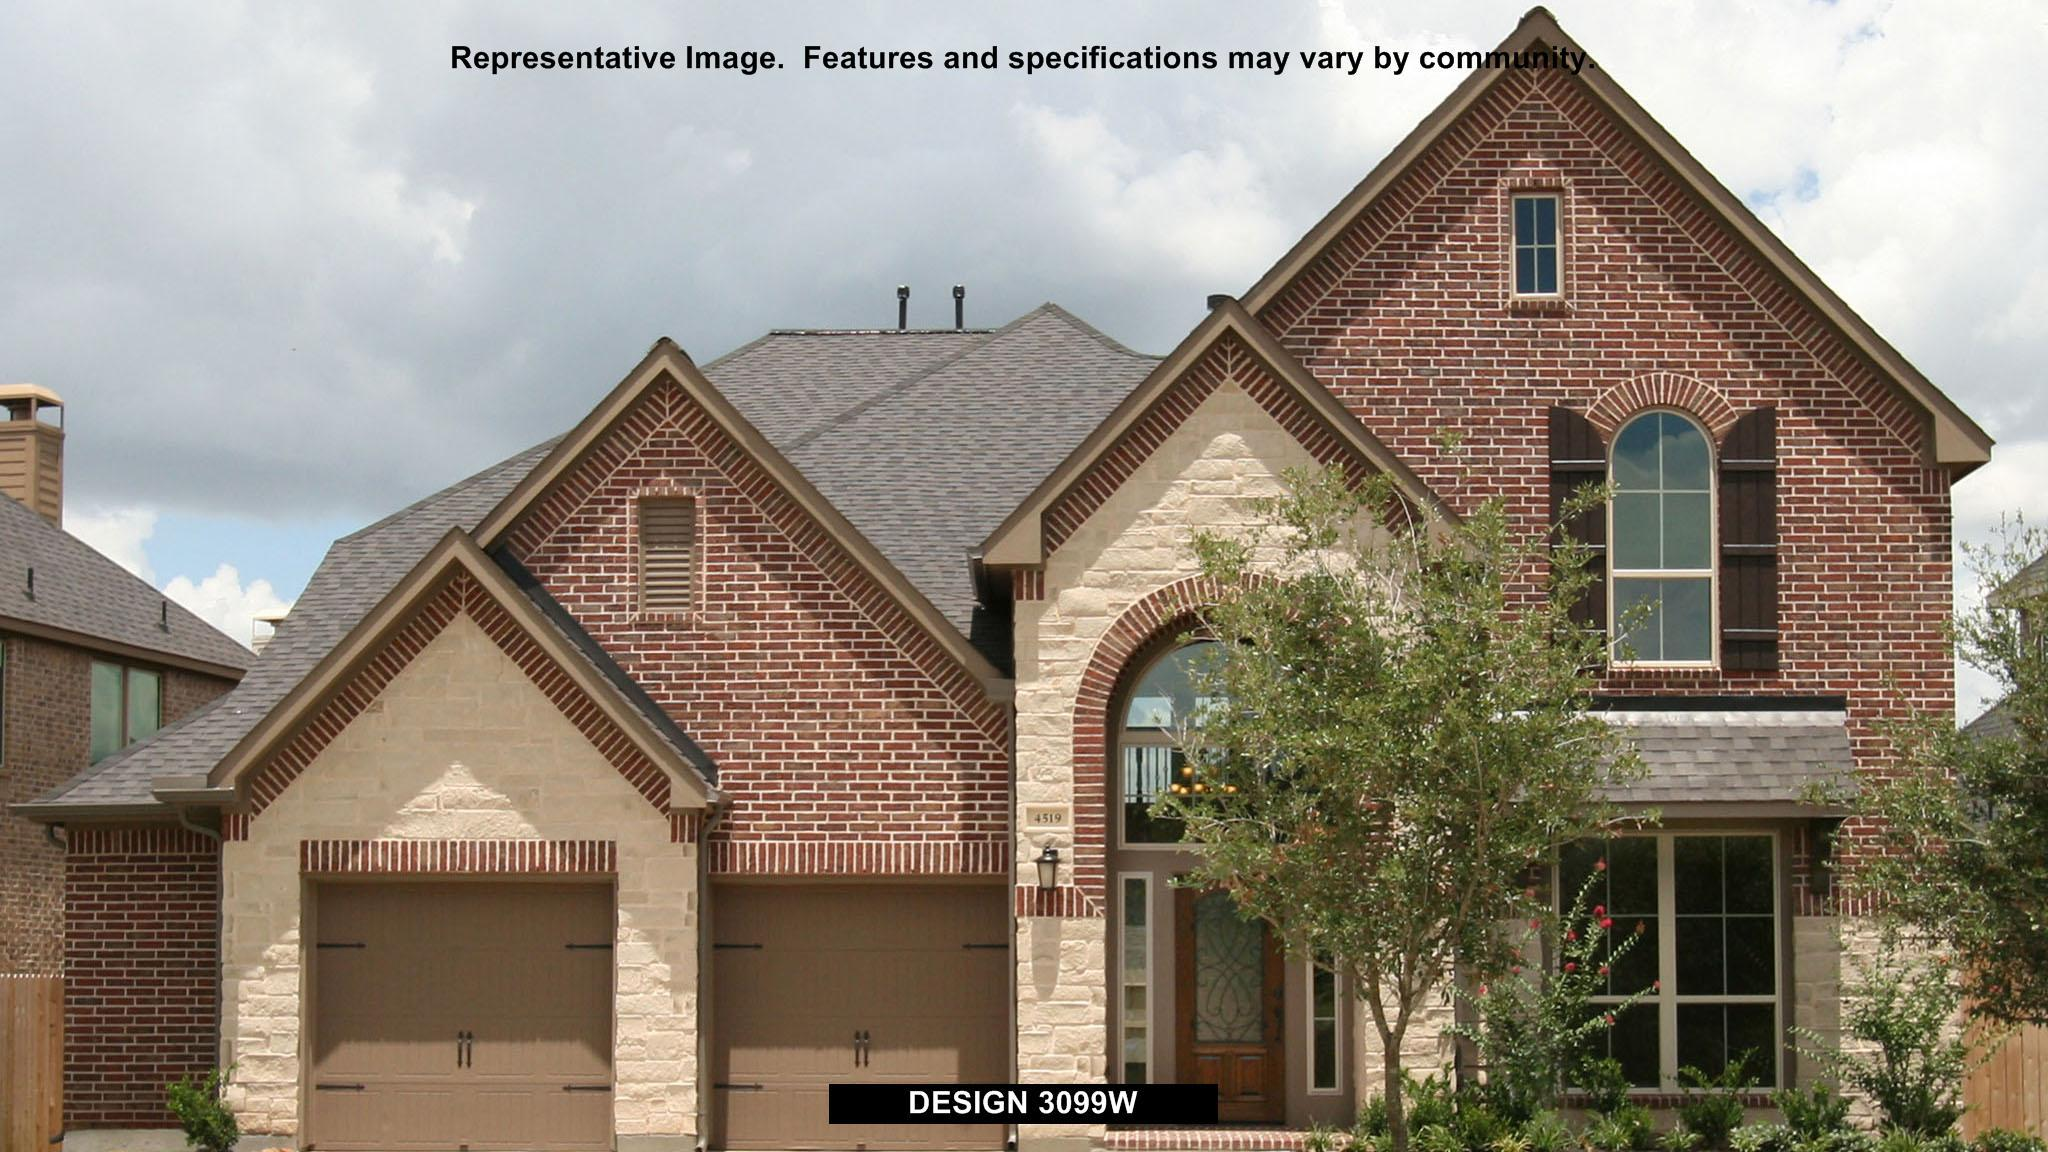 Single Family for Sale at Blanco Vista 50' - 3099w 120 Lacey Oak Loop San Marcos, Texas 78666 United States